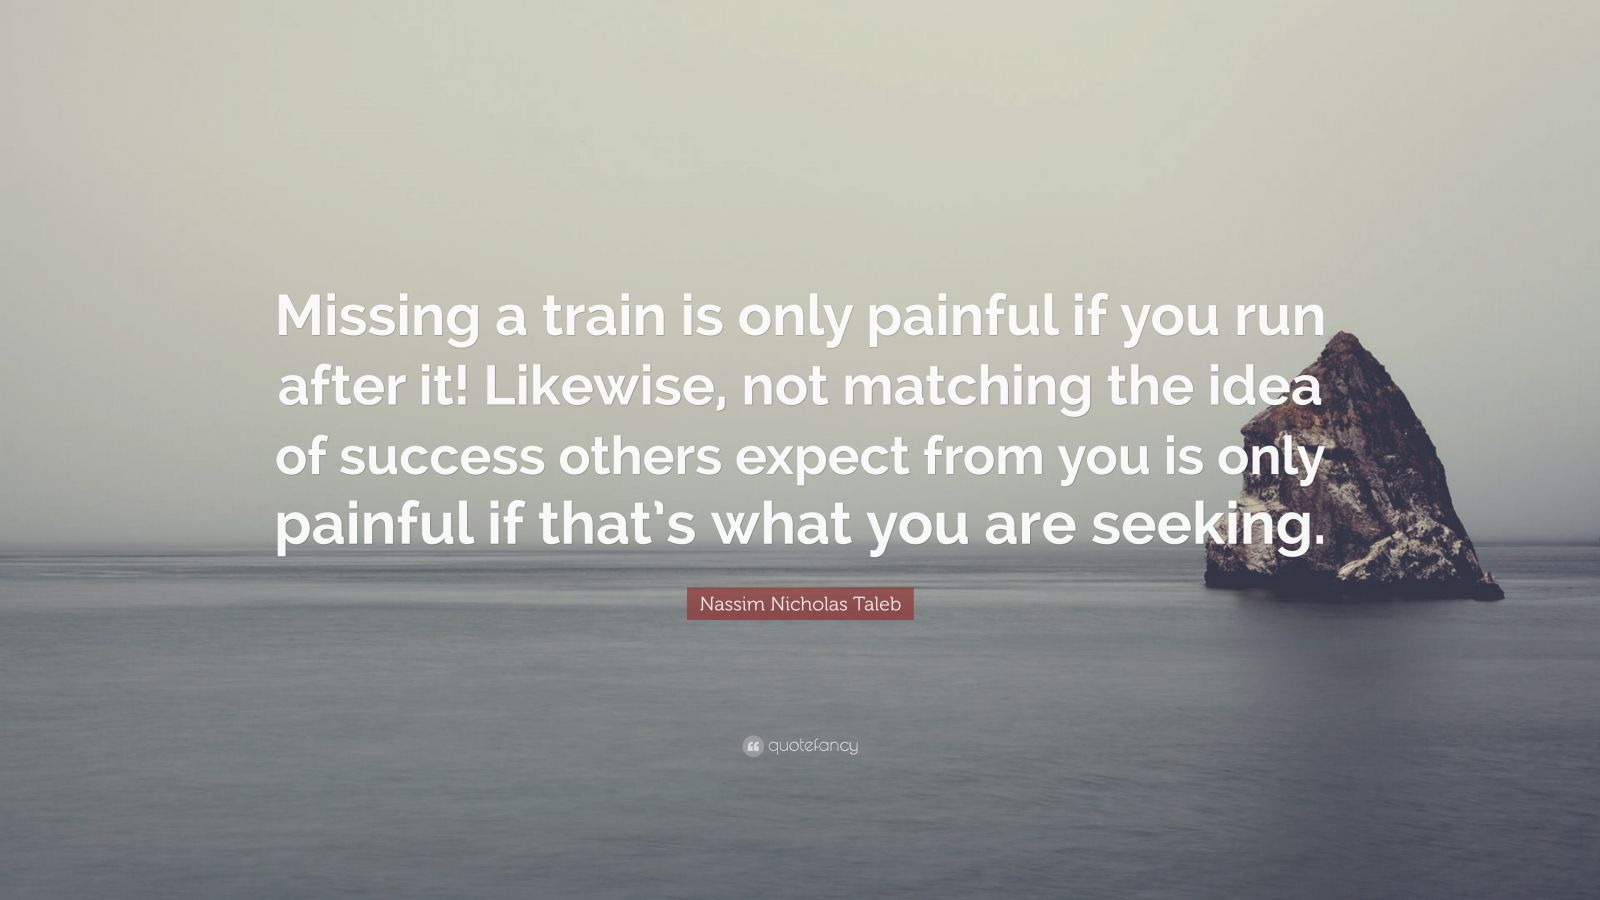 """Nassim Nicholas Taleb Quote: """"Missing a train is only painful if you run after it! Likewise, not matching the idea of success others expect from you is only painful if that's what you are seeking."""""""